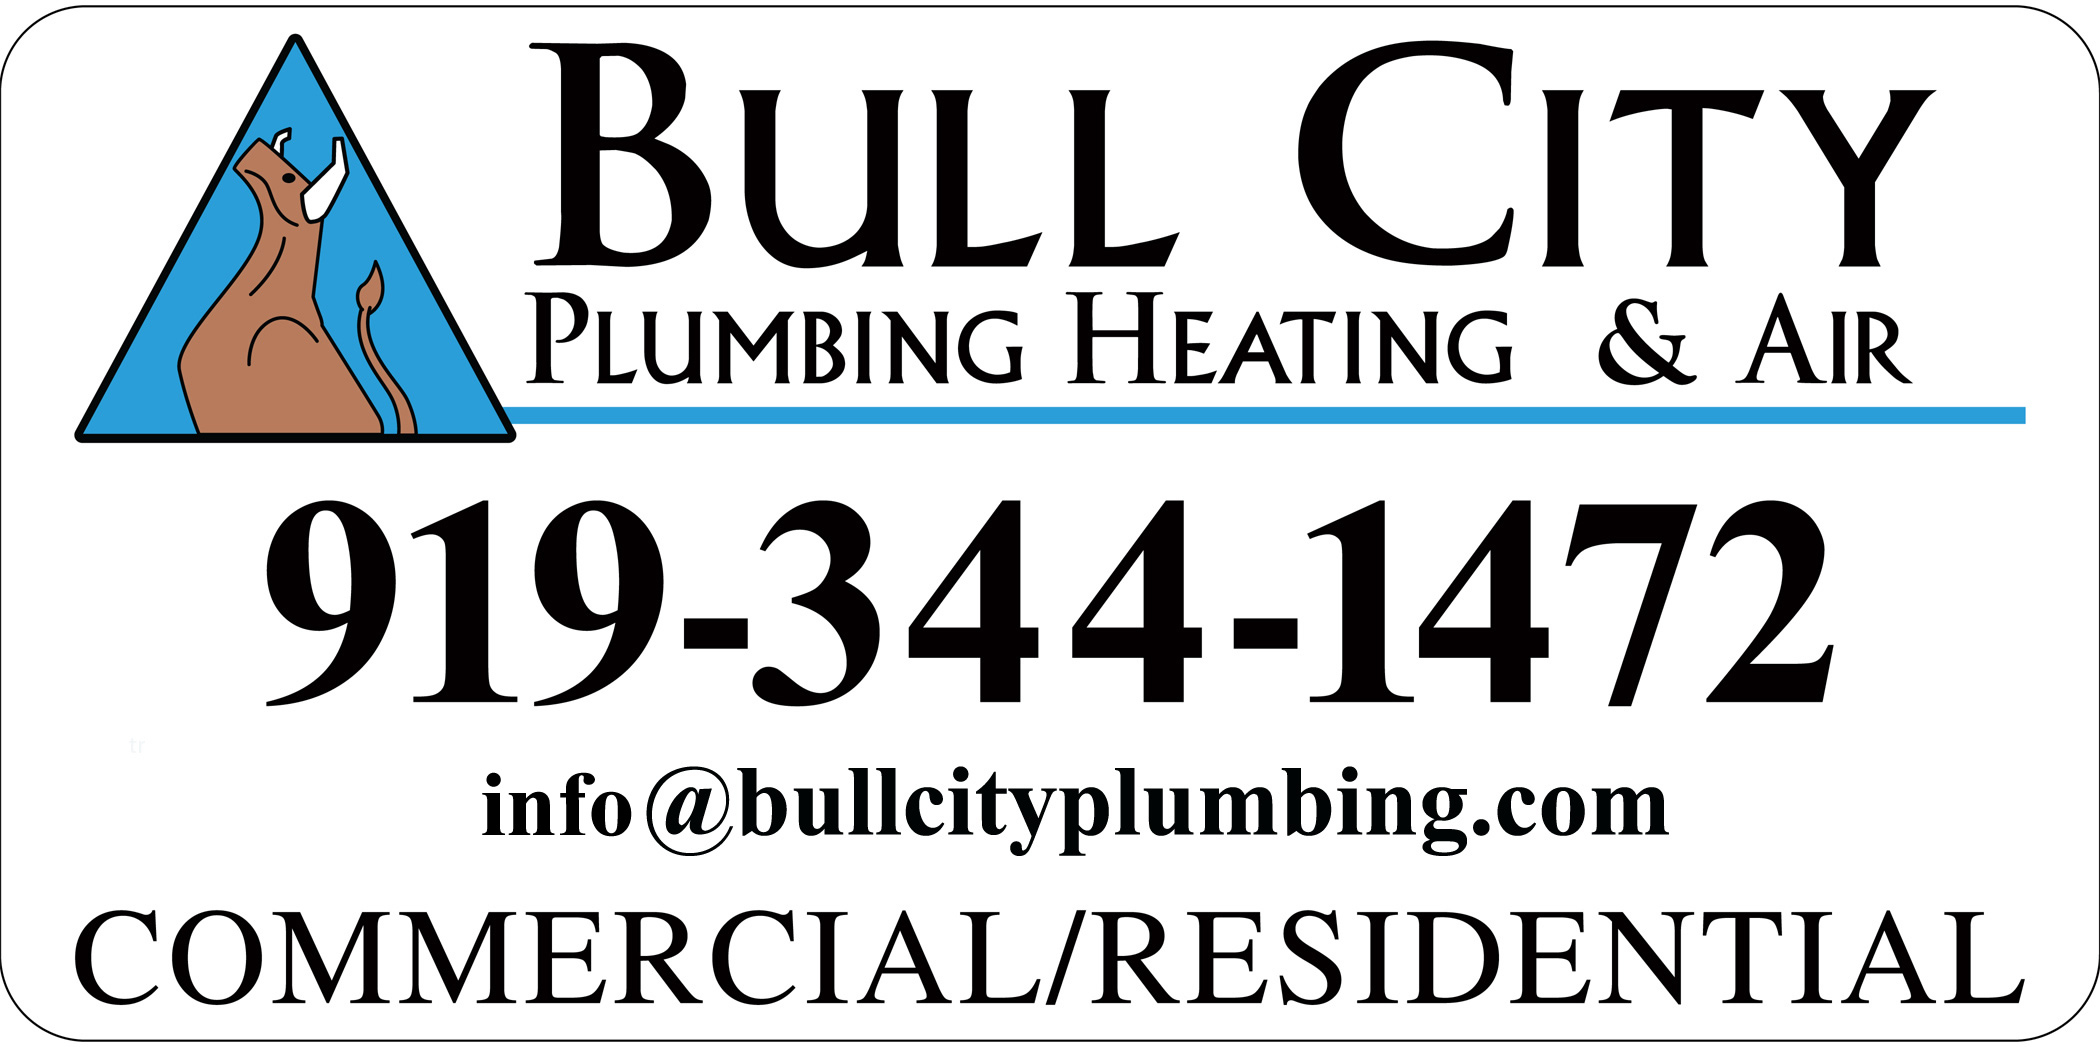 Bull City Plumbing Heating Air Durham Hillsborough Raleigh Cary